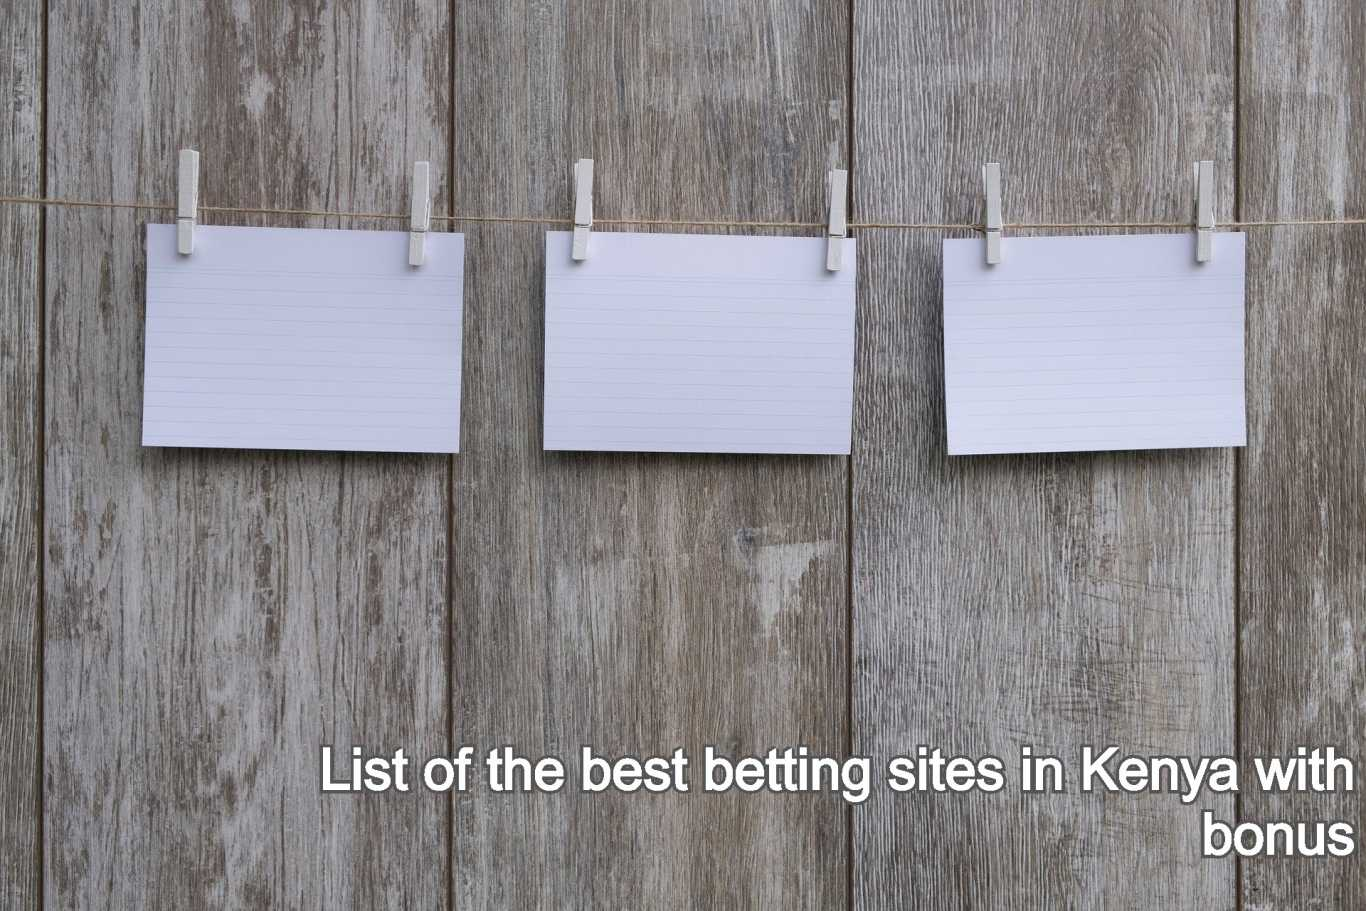 List of the best betting sites in Kenya with bonus